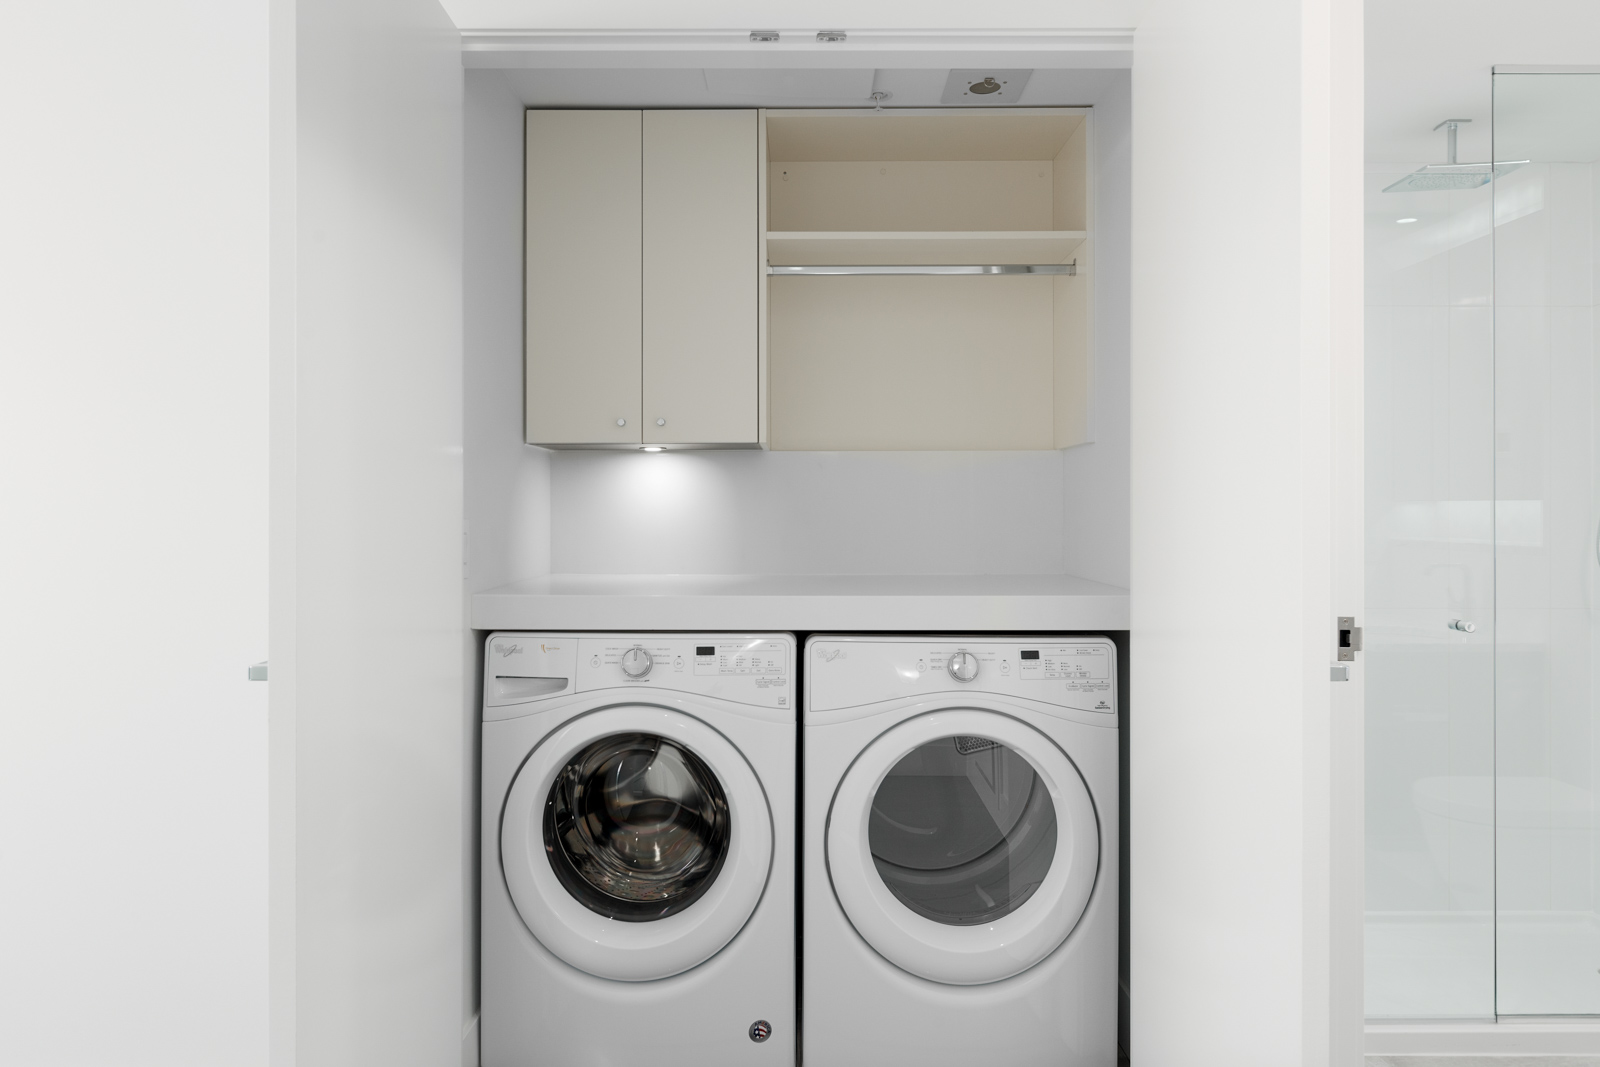 Washer and dryer closet inside luxury Vancouver rental.